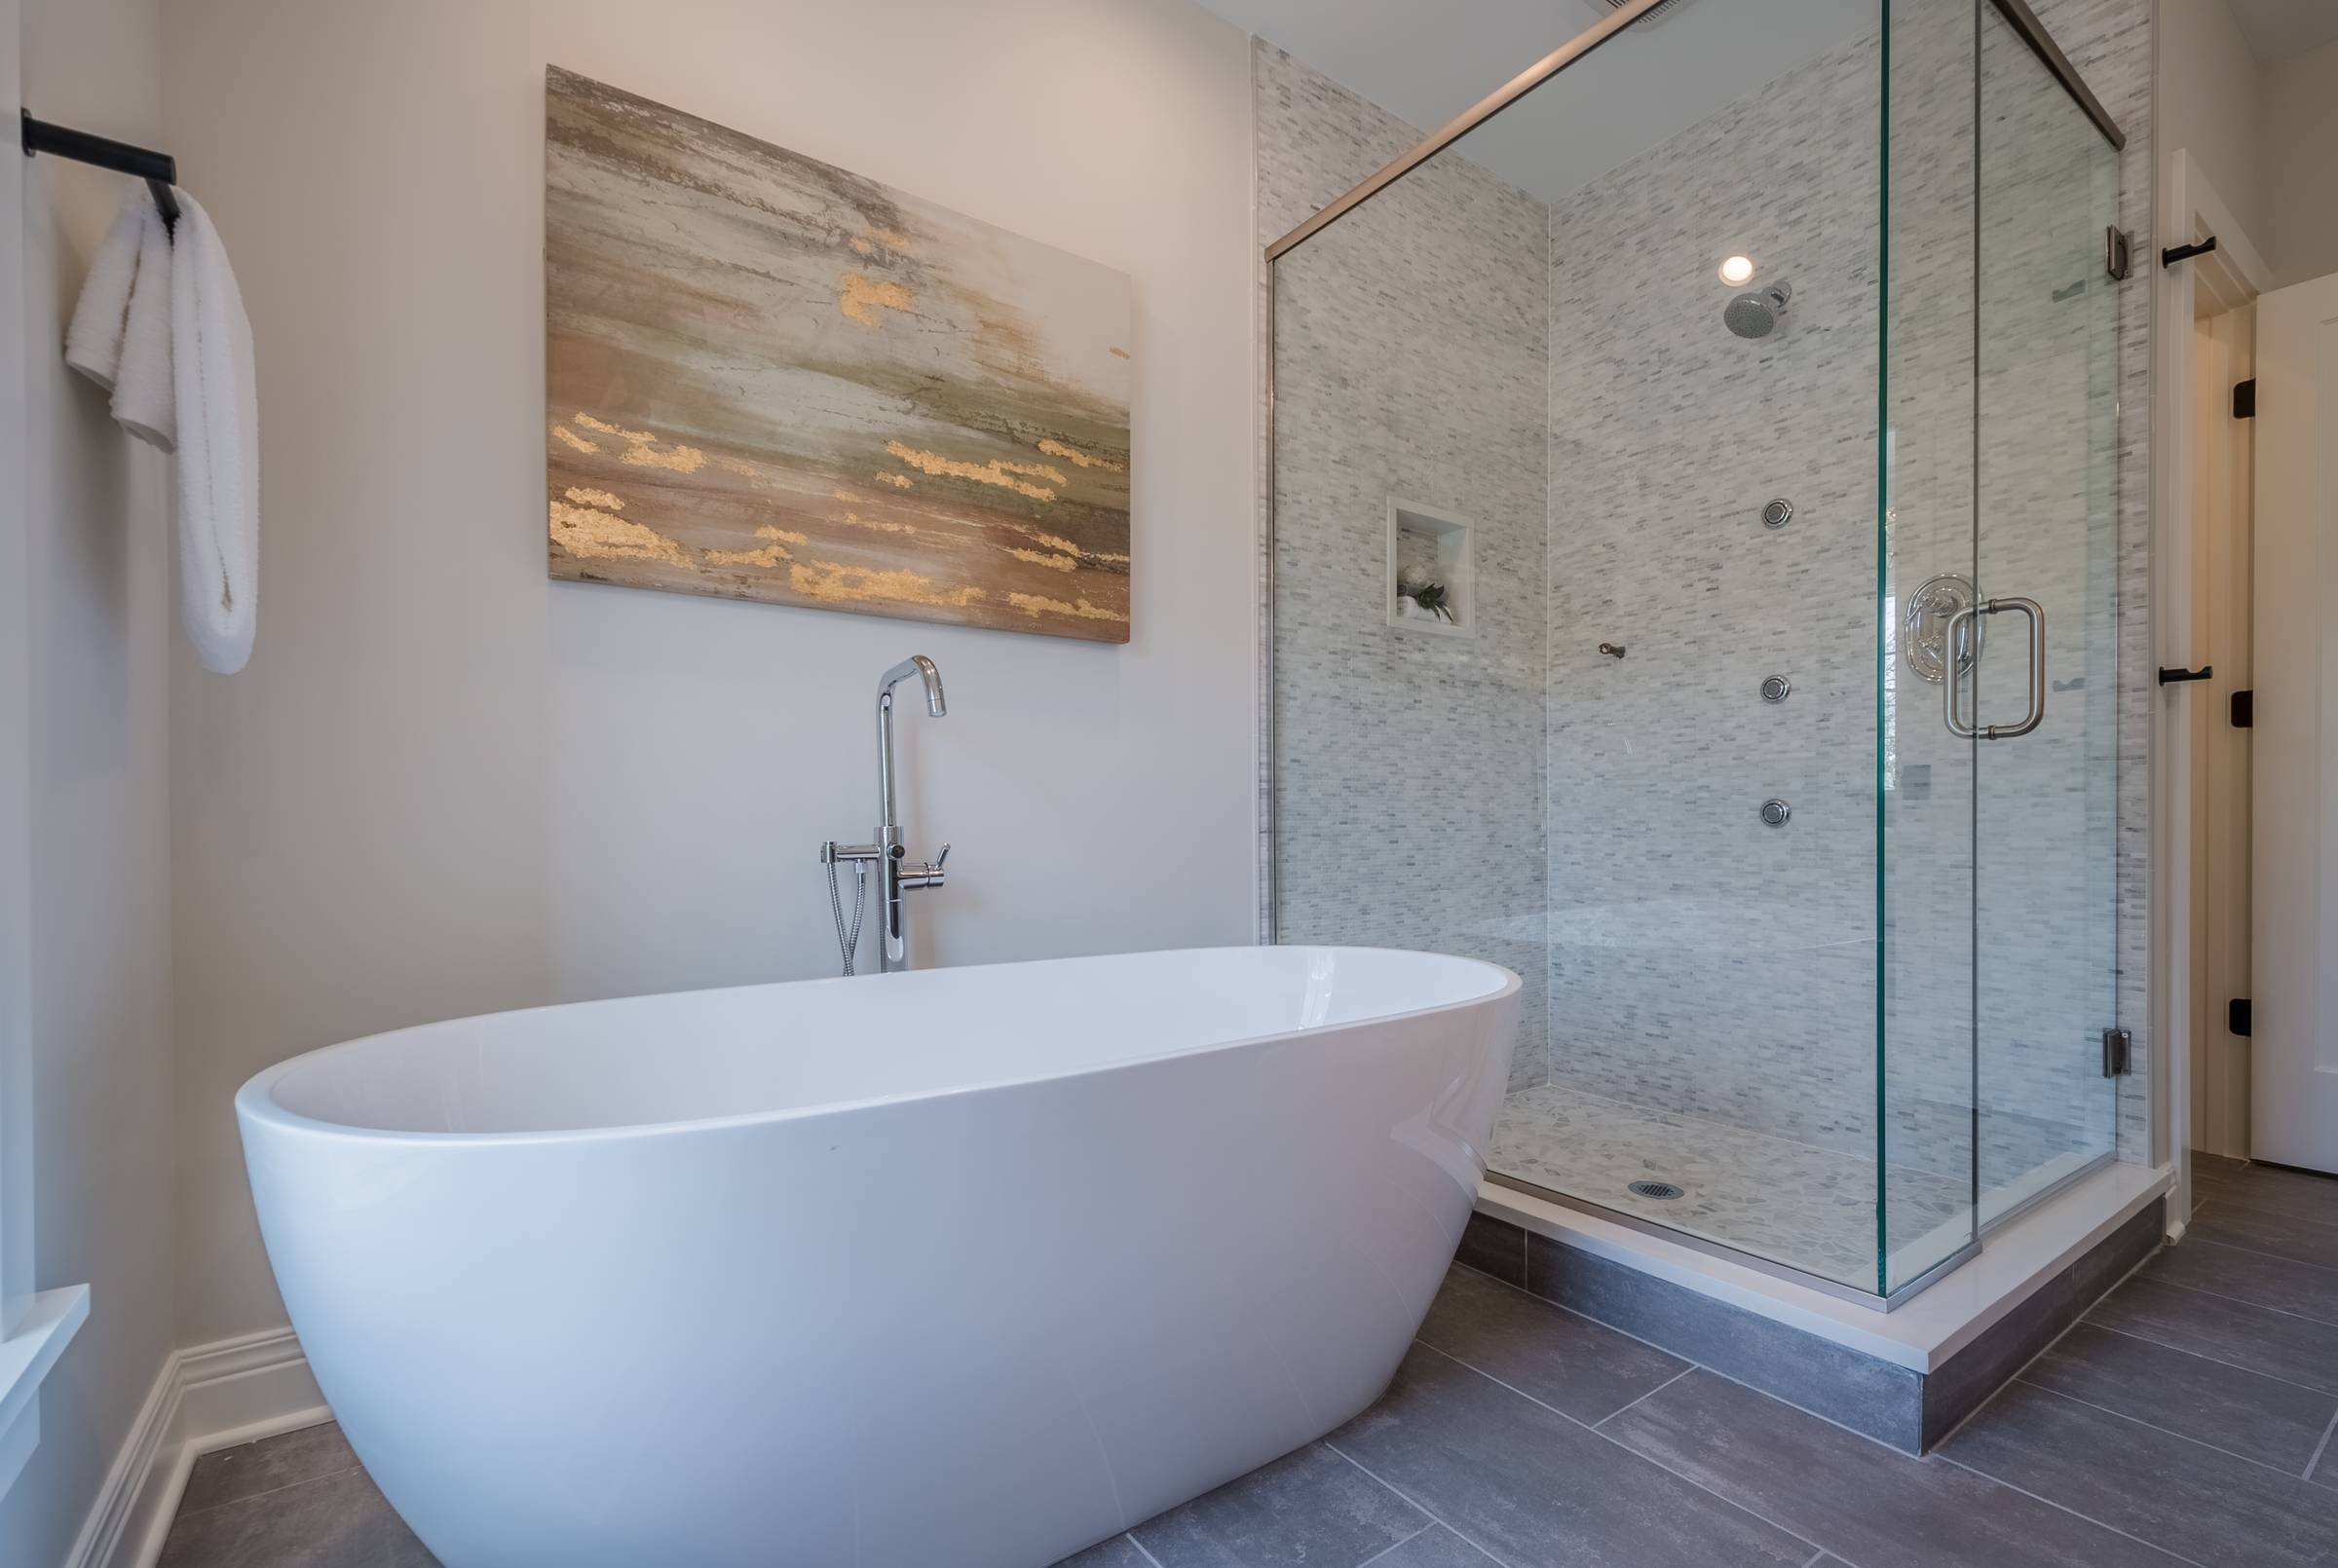 Ceramic tub next to glass shower with bronze painting